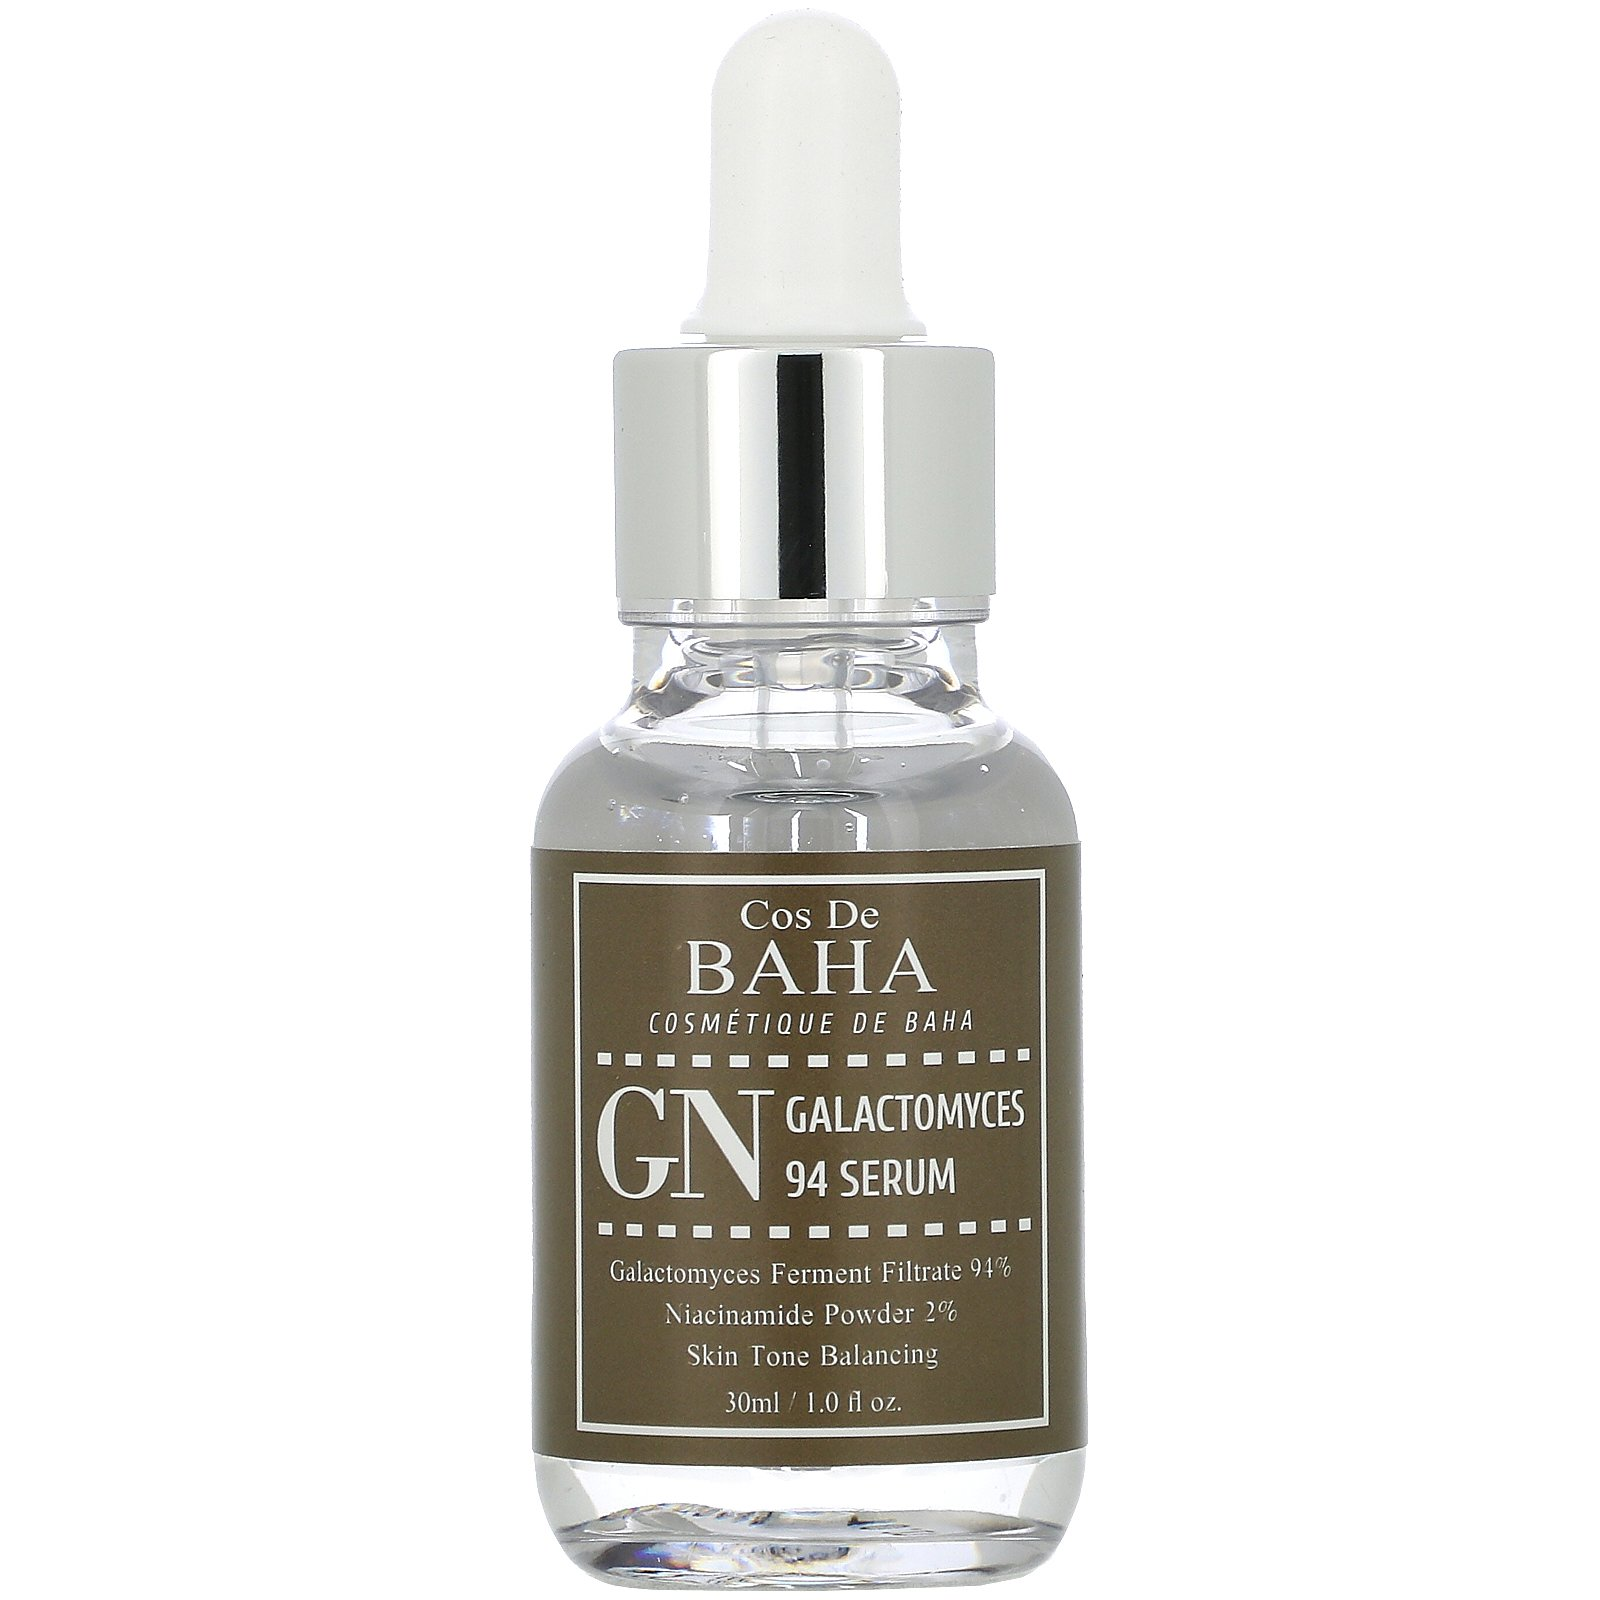 Cos De BAHA, GN, Galactomyces 94 Serum, 1 fl oz (30 ml)